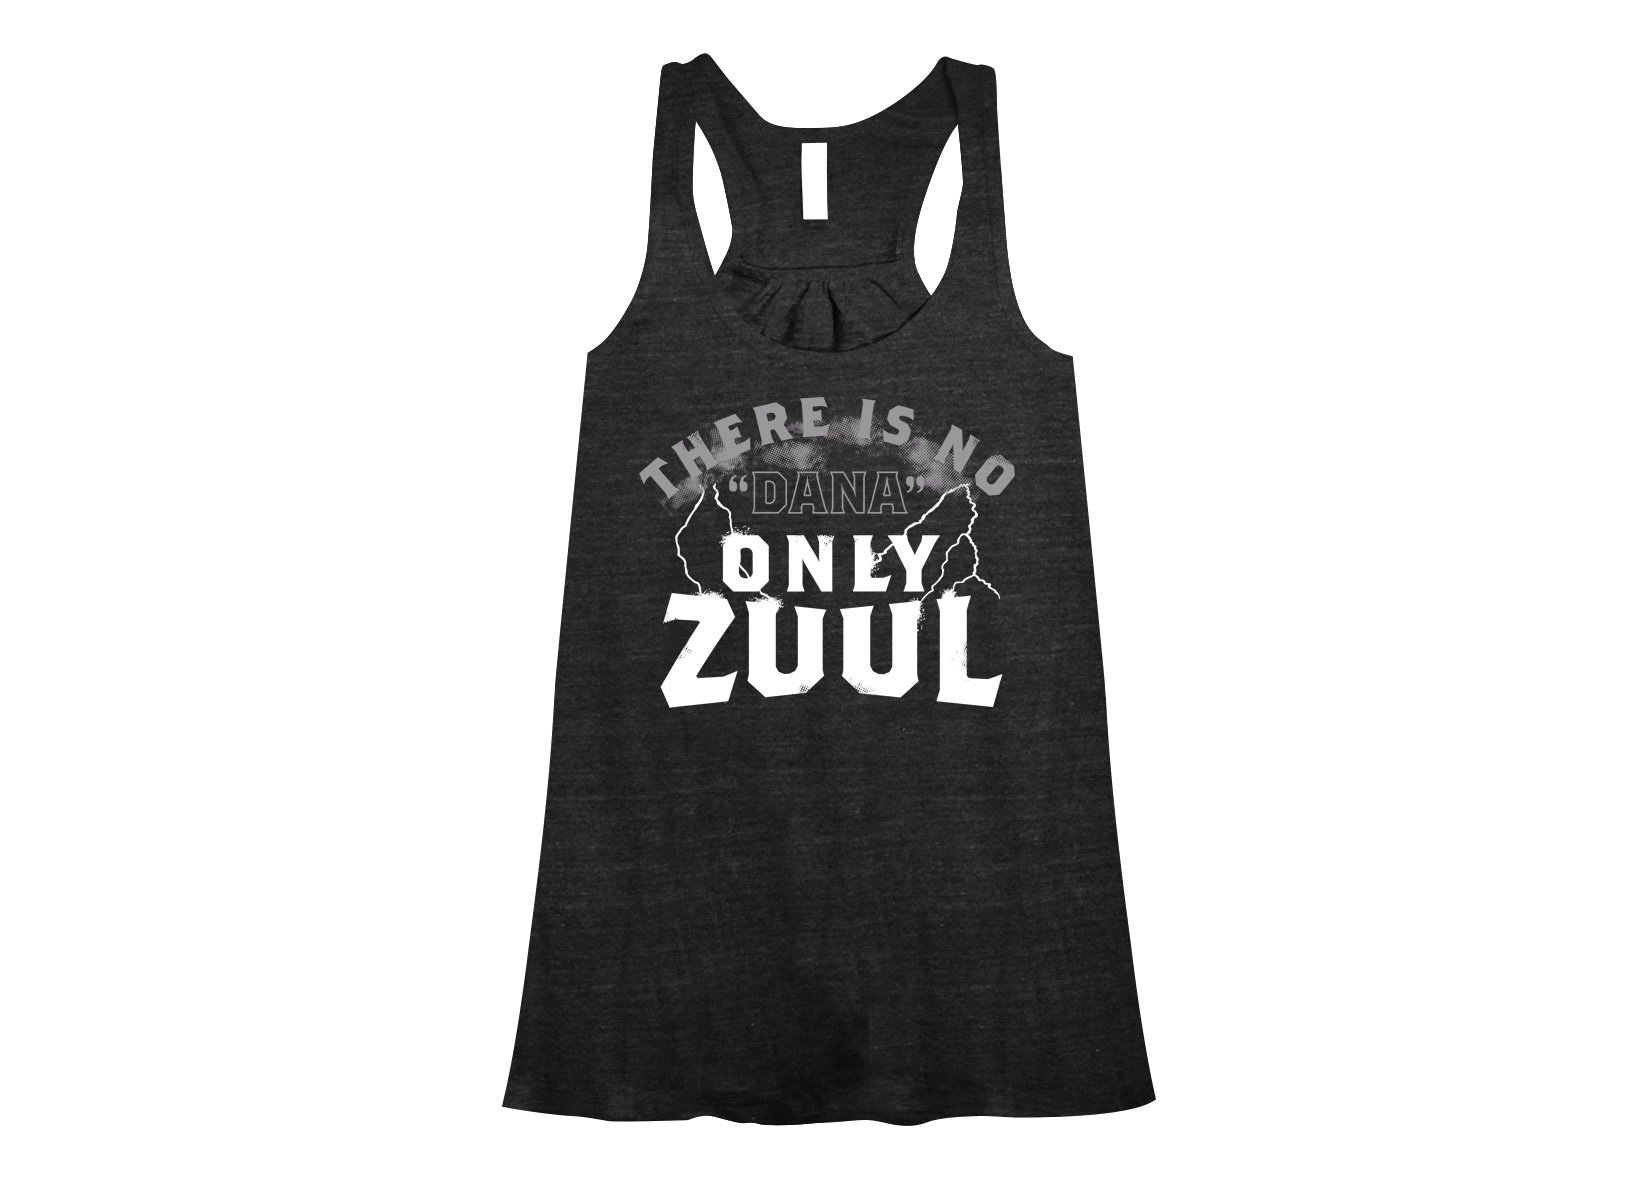 Only Zuul on Womens Tanks T-Shirt